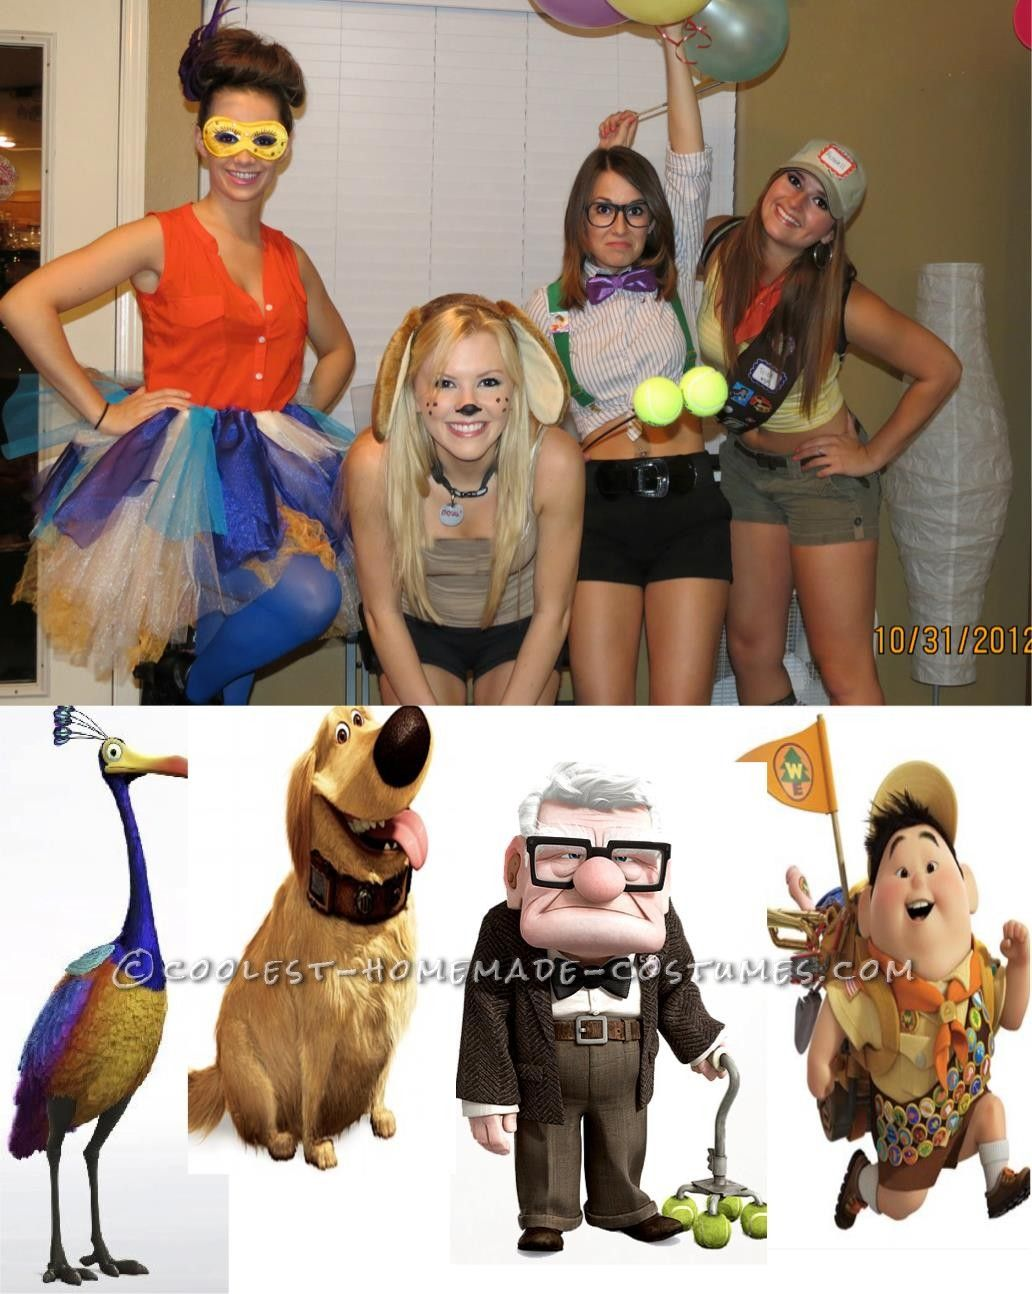 Coolest up girls group costume the old homemade for Cute homemade halloween costumes for girls